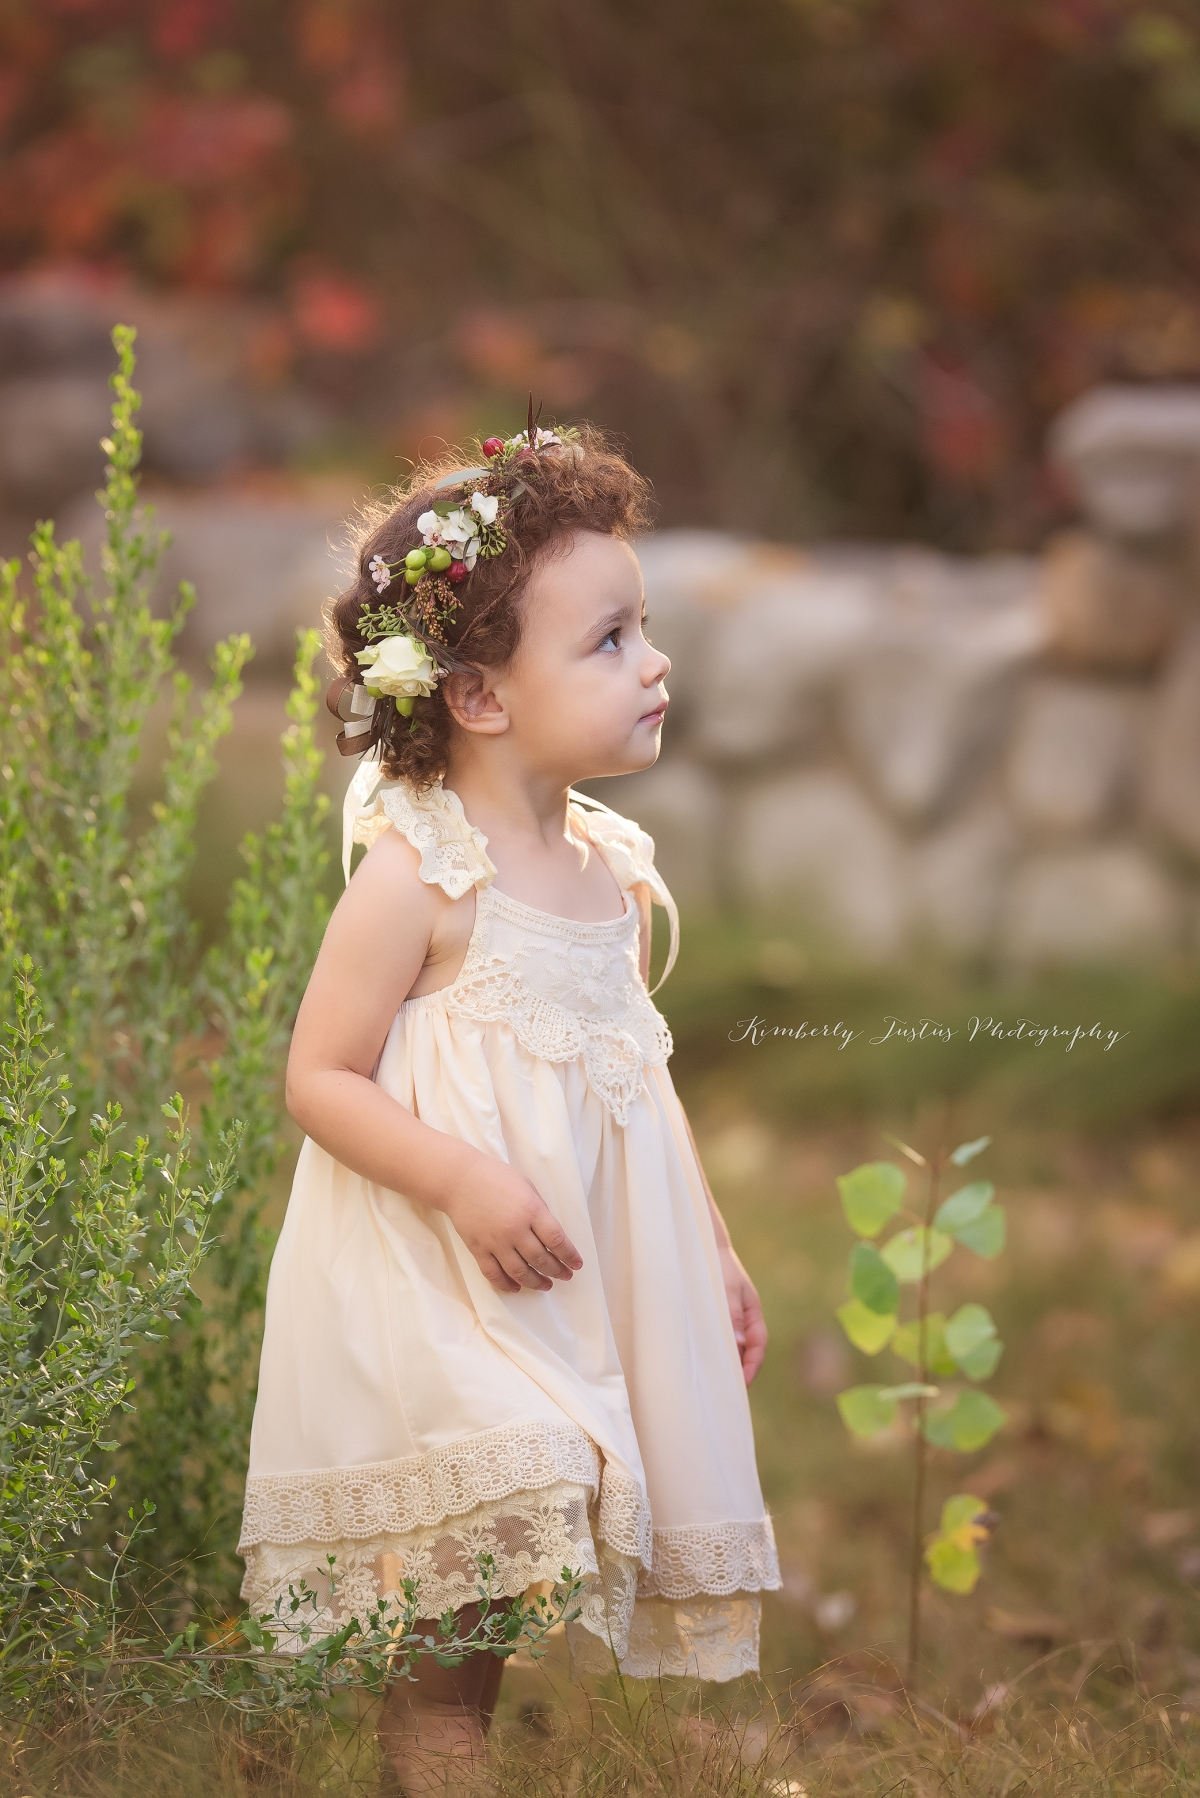 temecula-murrieta-newborn-baby-maternity-photographer-www-kimberlyjustusphotography-com-luna-blog-2-of-4